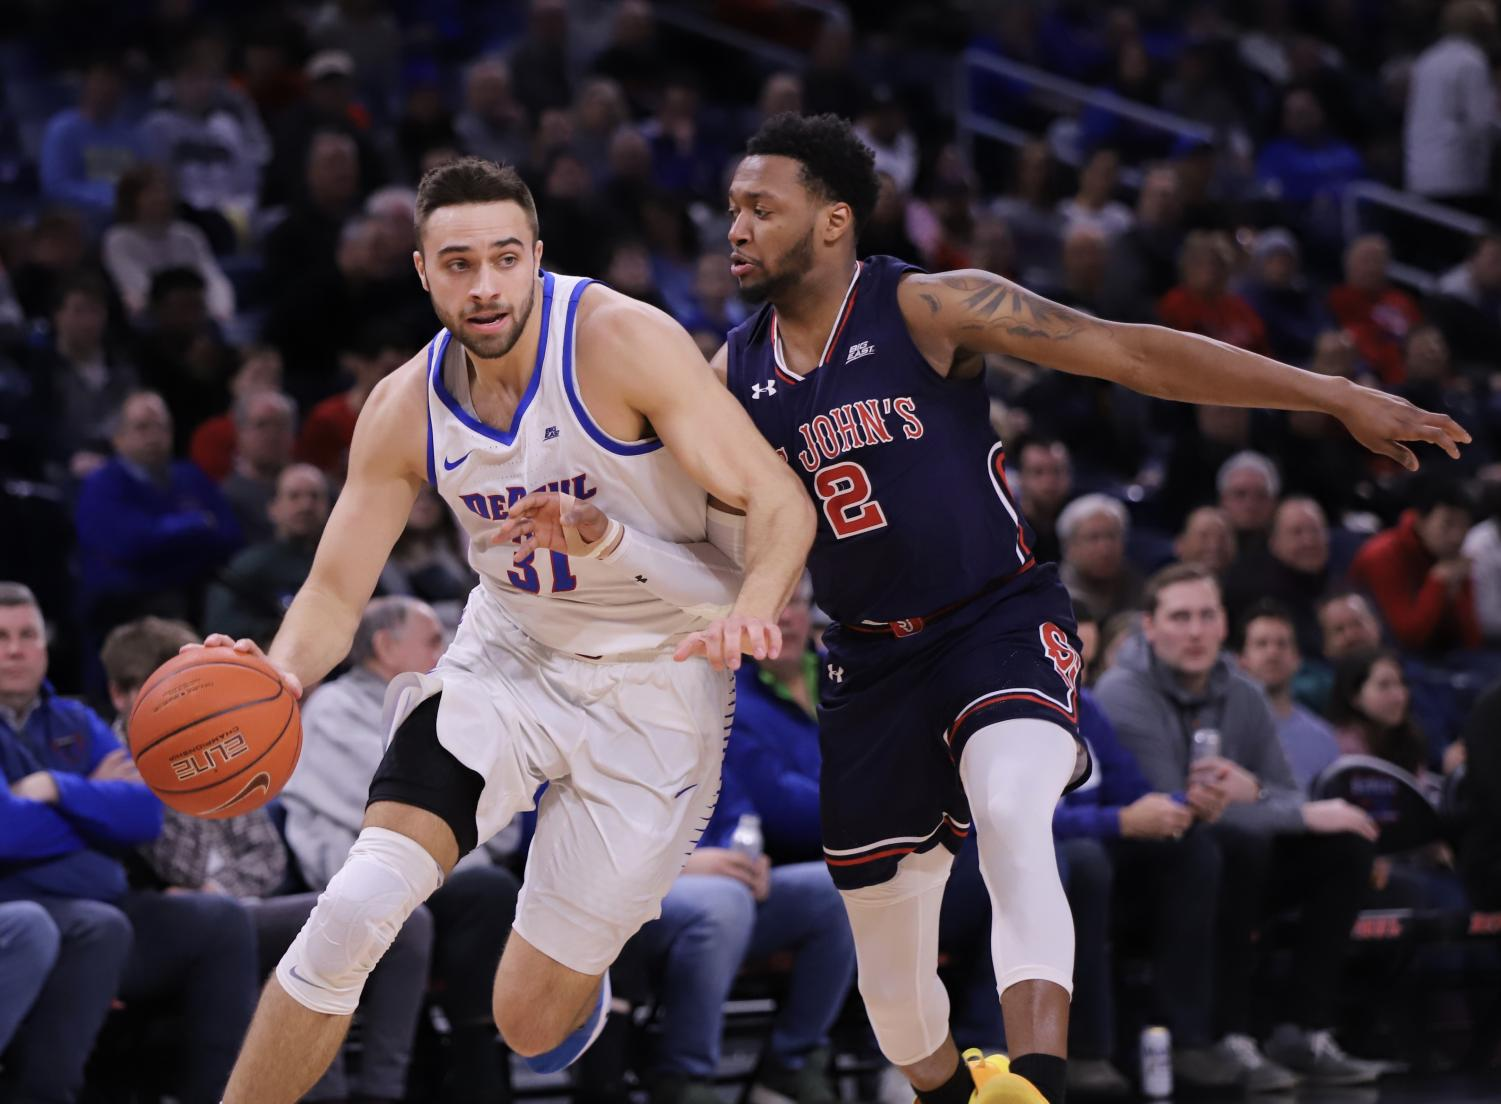 DePaul senior guard Max Strus drives past St John's guard Shamorie Ponds, who signed as an undrafted free agent with the Houston Rockets, during Sunday's game against St. John's at Wintrust Arena. Alexa Sandler | The DePaulia